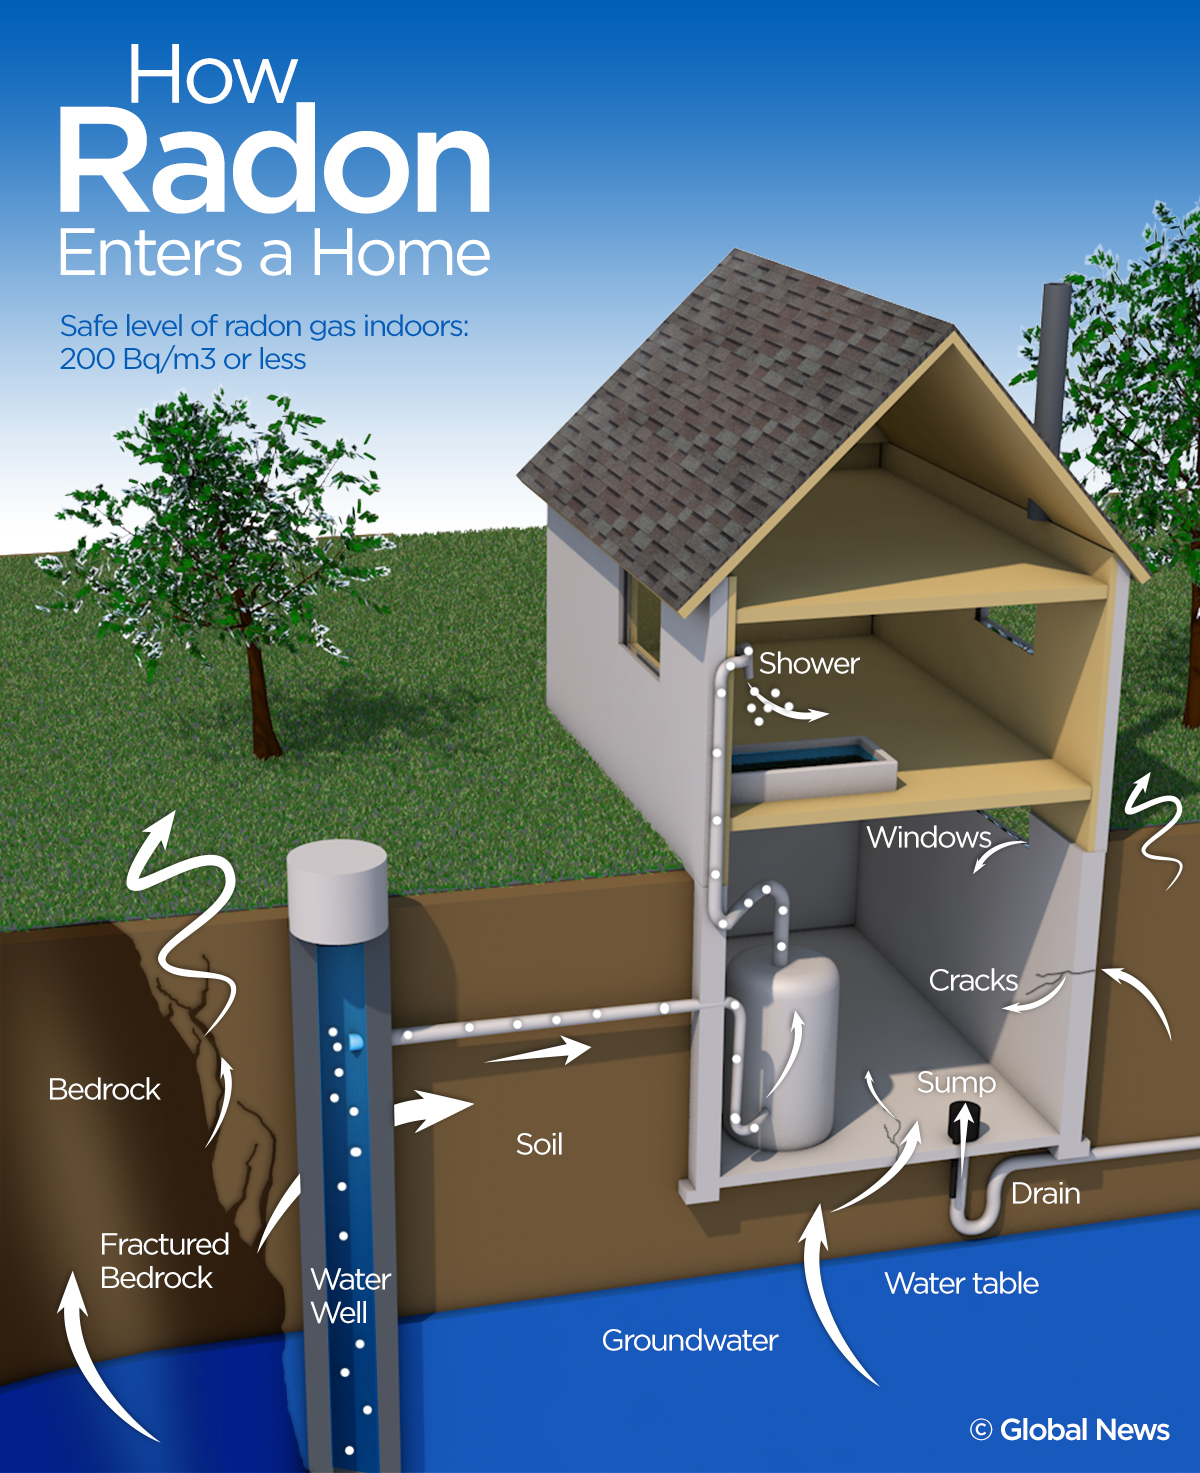 Radon test kits available for purchase at the session for 35 dollars.